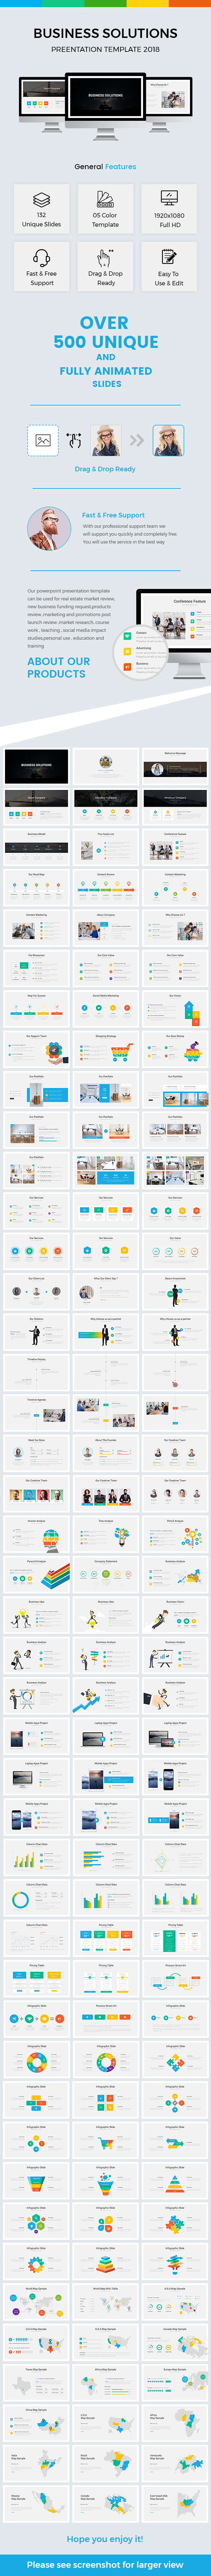 Business Solutions  Powerpoint Template 2018 - Business PowerPoint Templates